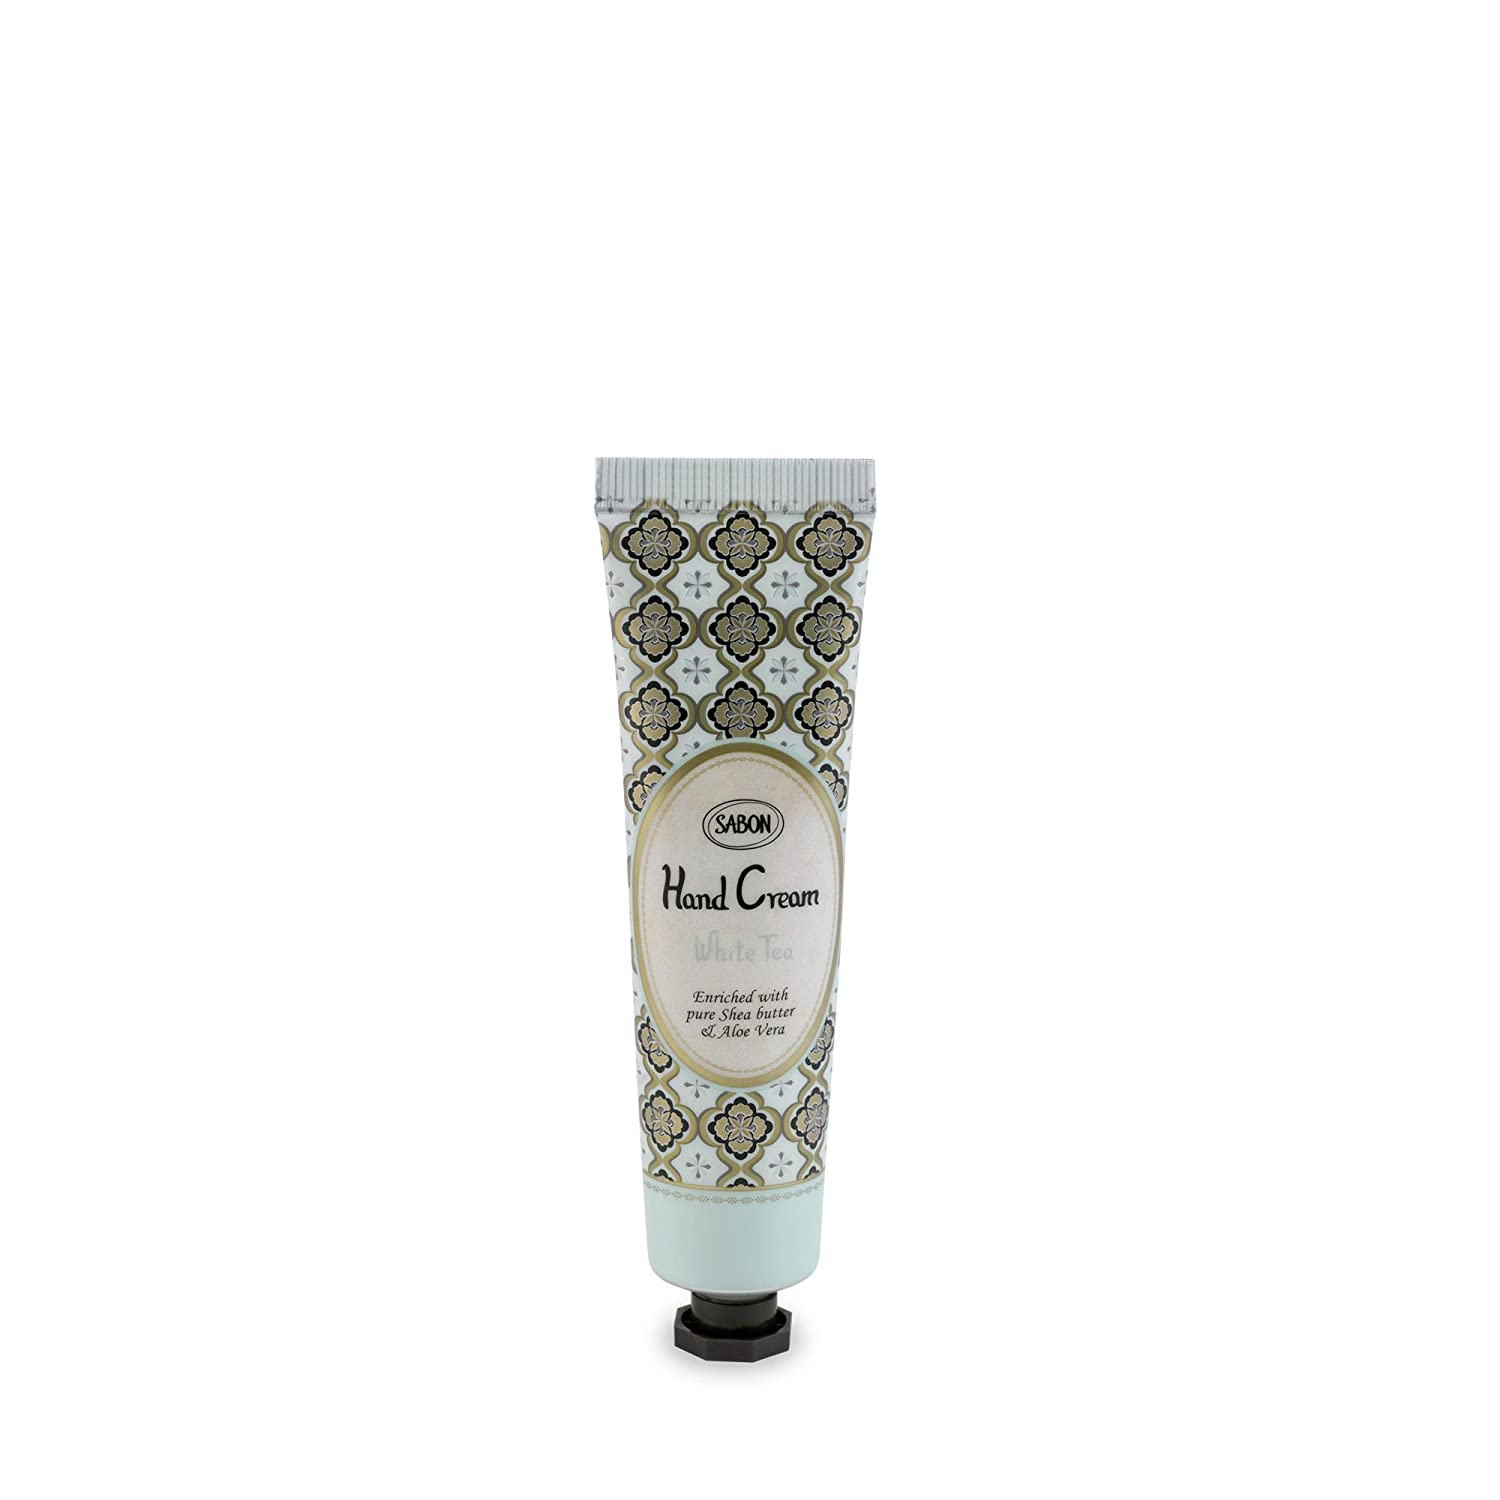 SABON Sabon - Mini Hand Cream - Hand Sanitizer with Aloe Vera Extracts and Shea Butter - SLS and Paraben Free - White Tea, White Tea, 30 ct.